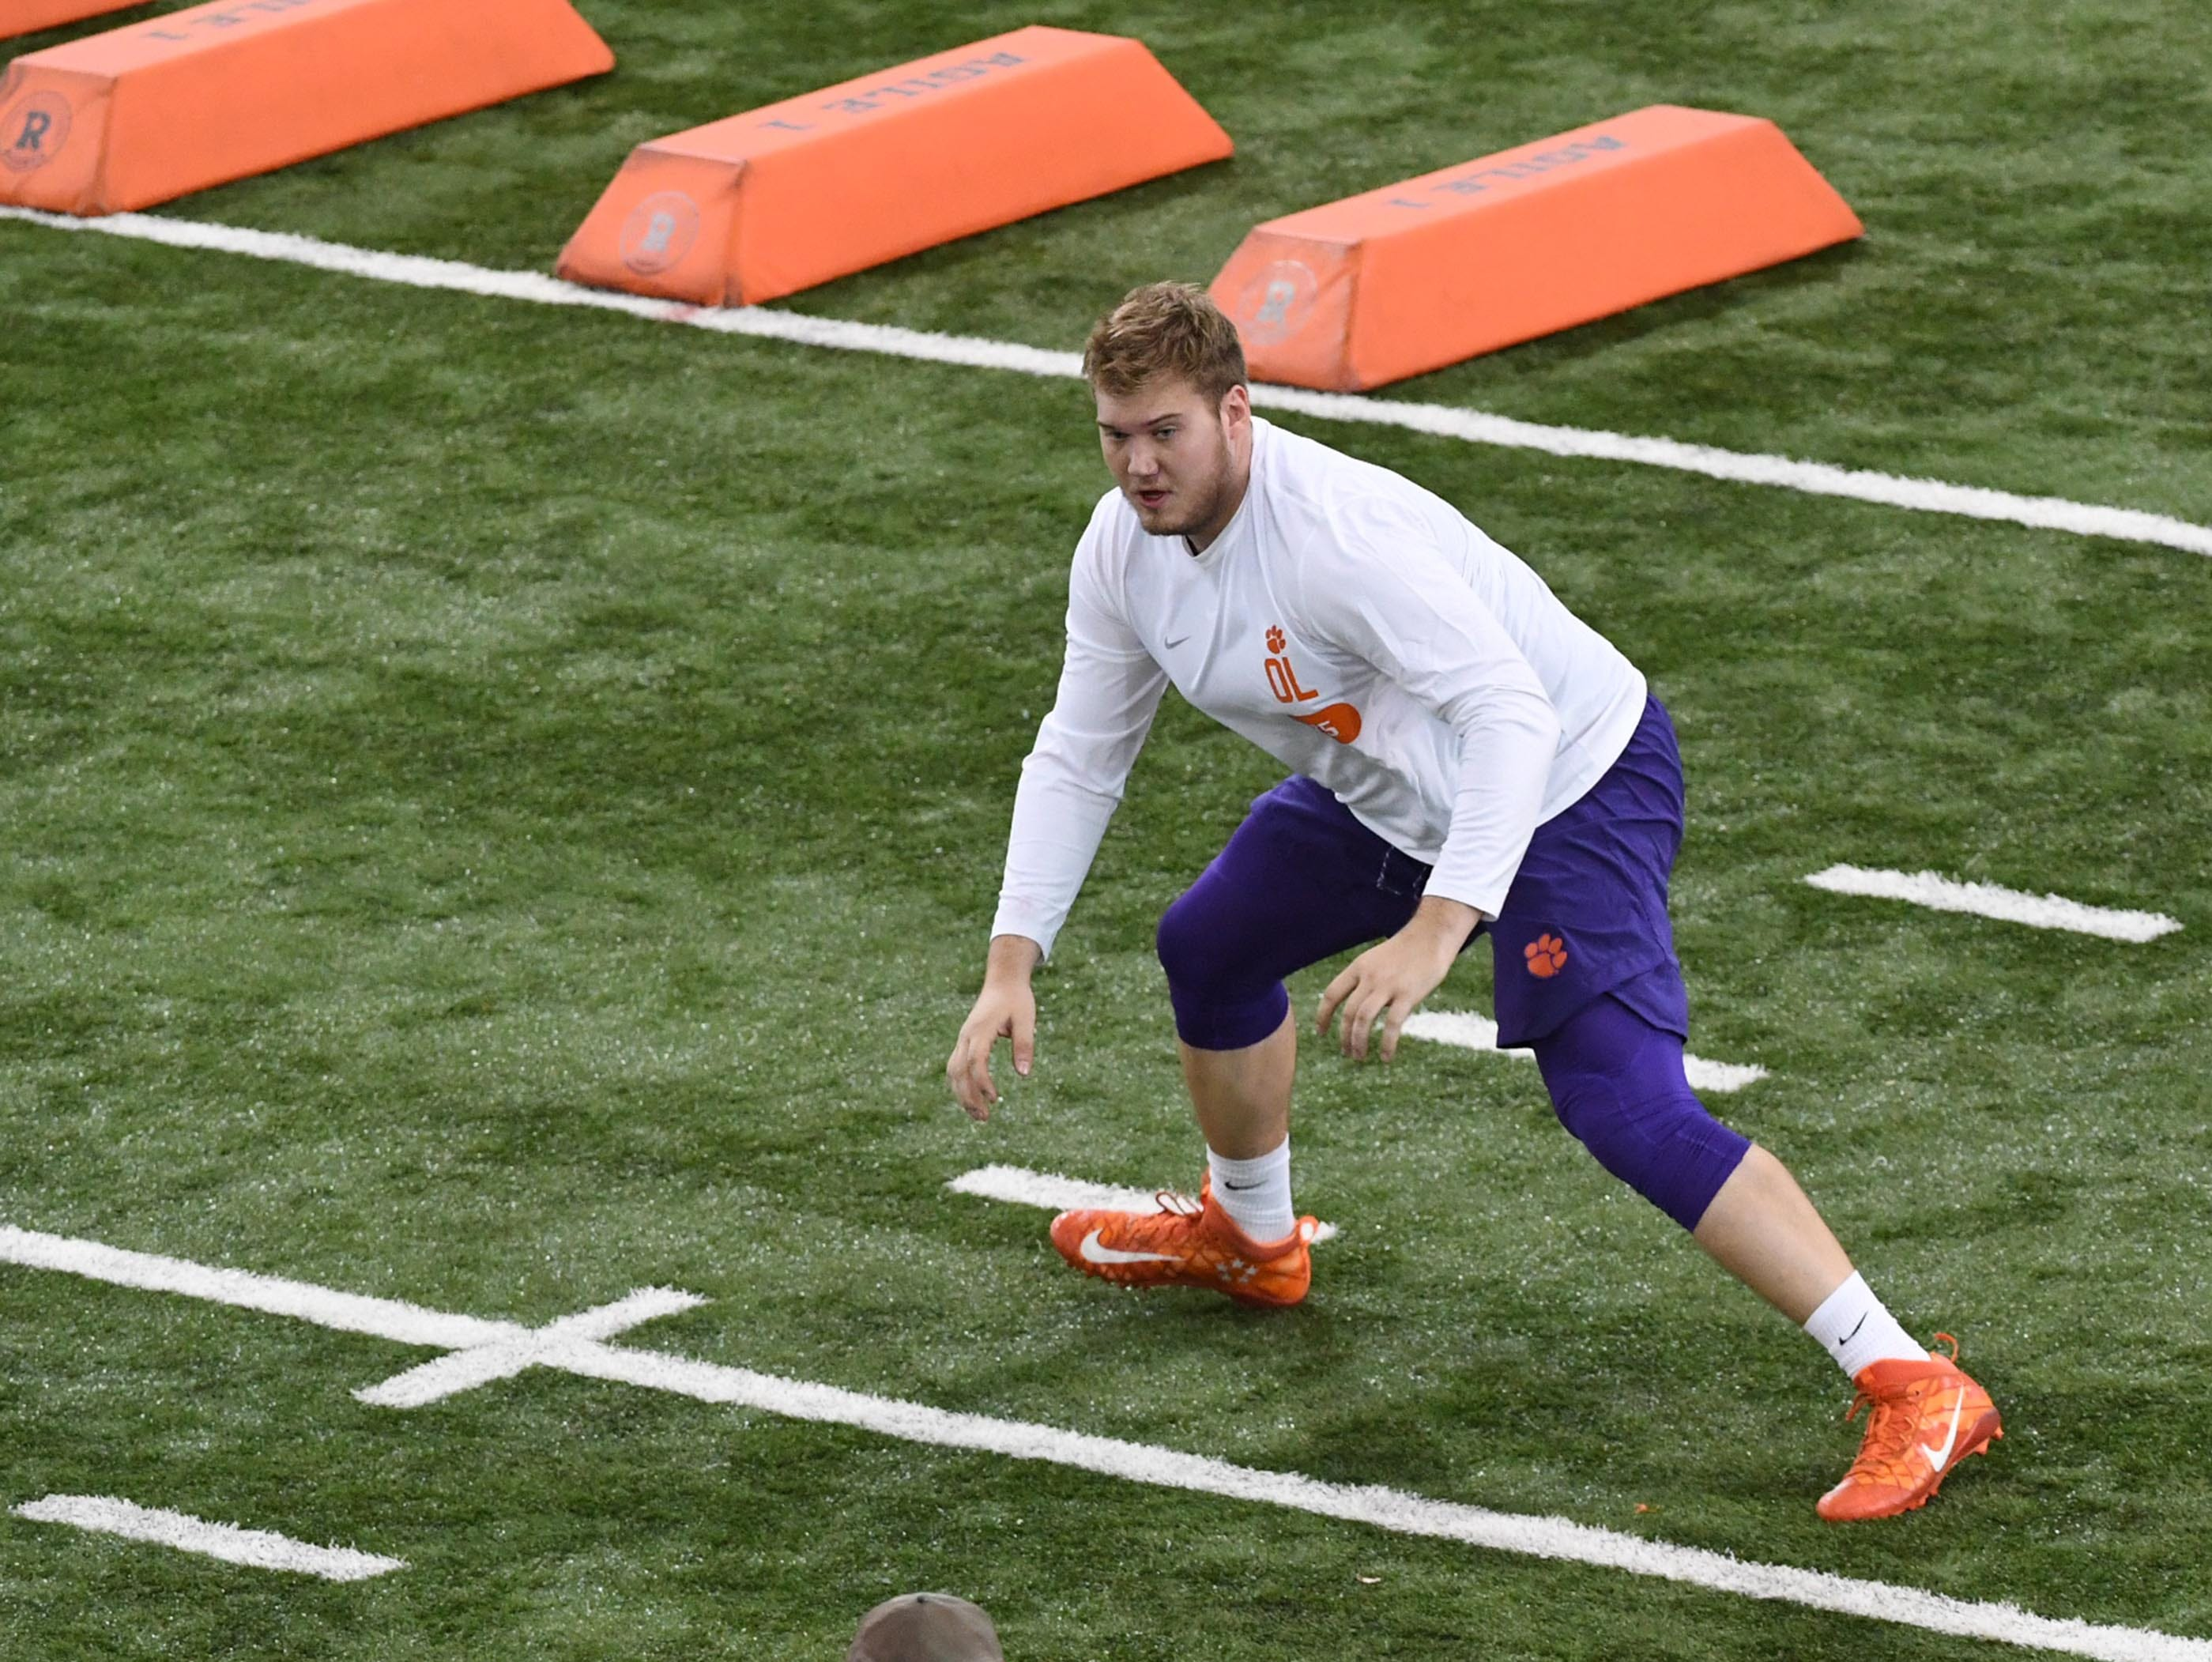 Offensive lineman Mitch Hyatt is tested during Clemson pro day at the Poe Indoor Facility in Clemson Thursday, March 14, 2019.